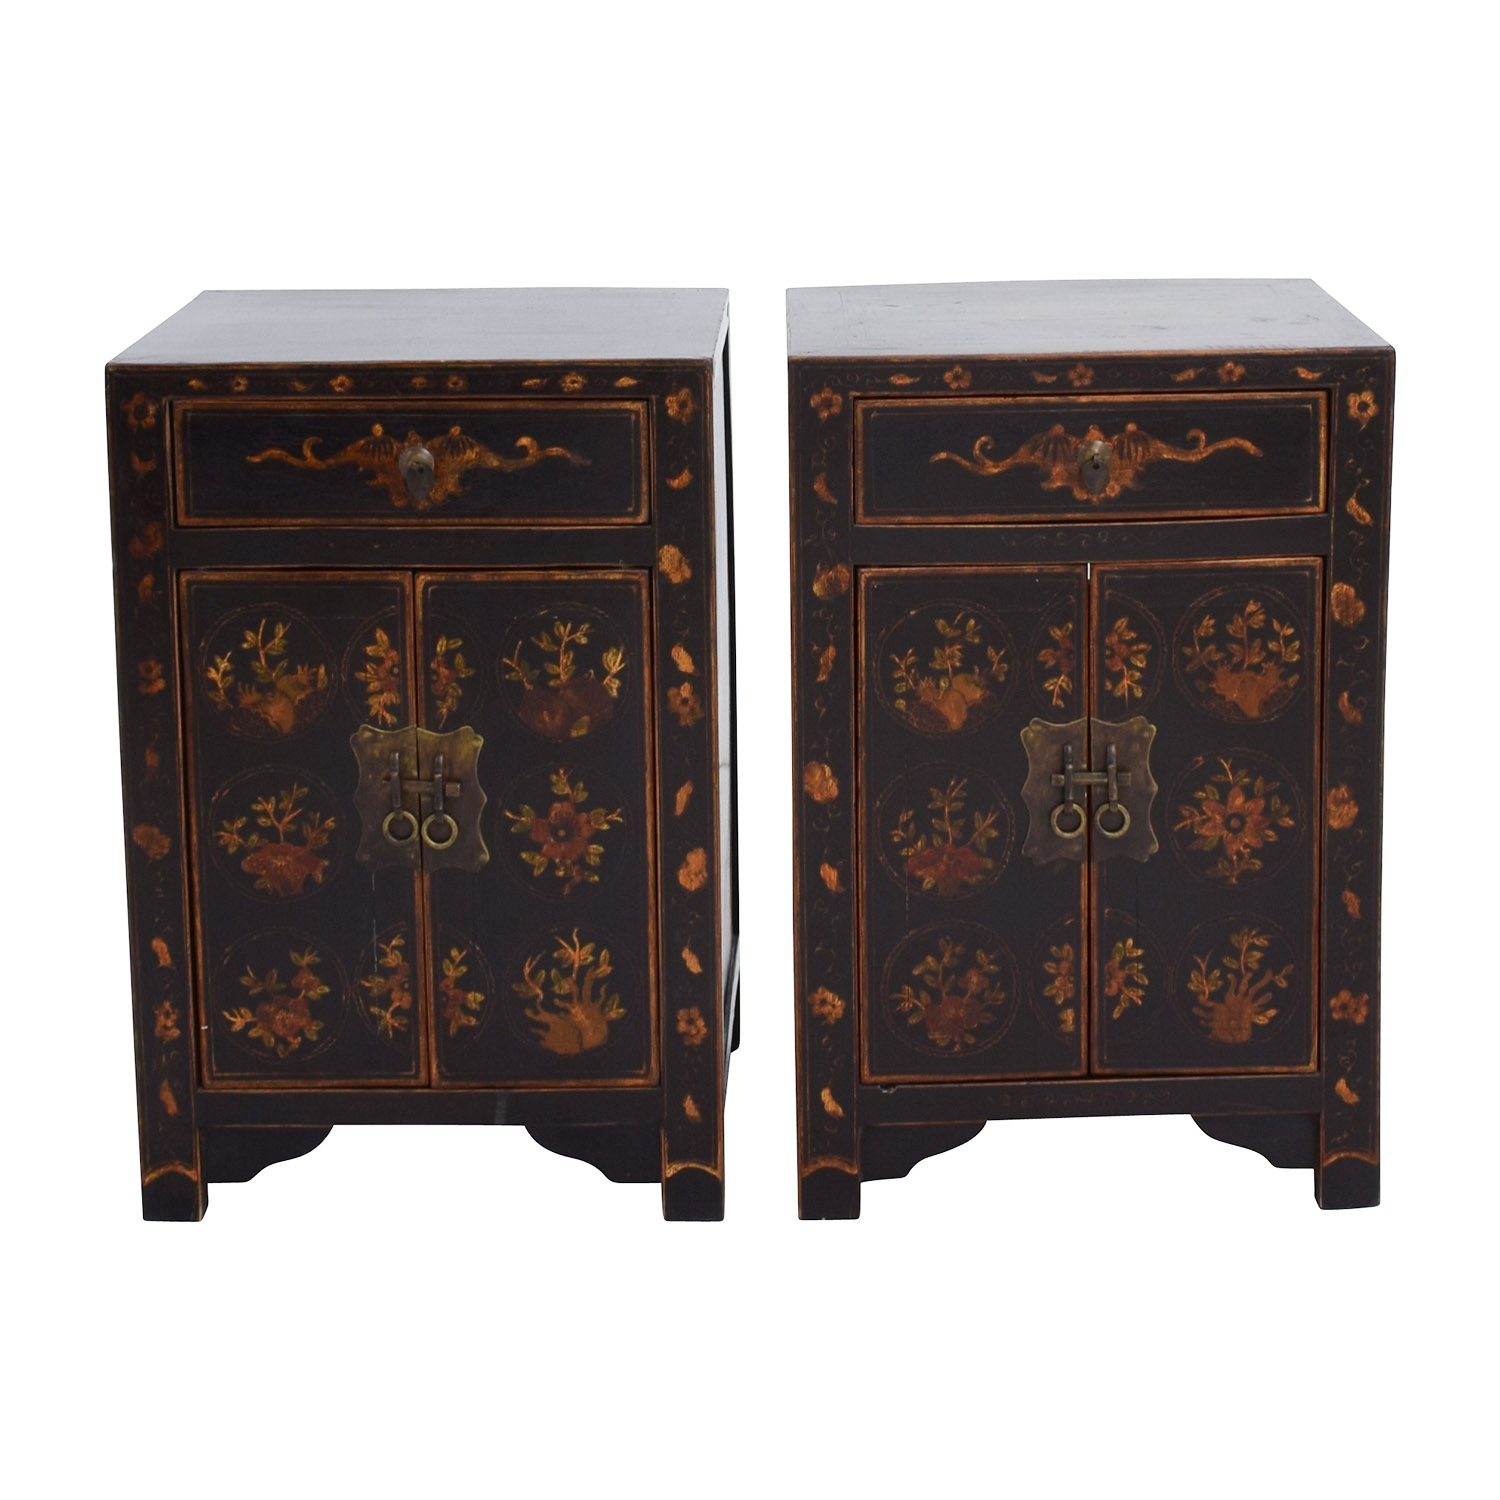 Antique Wood Side Tables with Floral Design sale